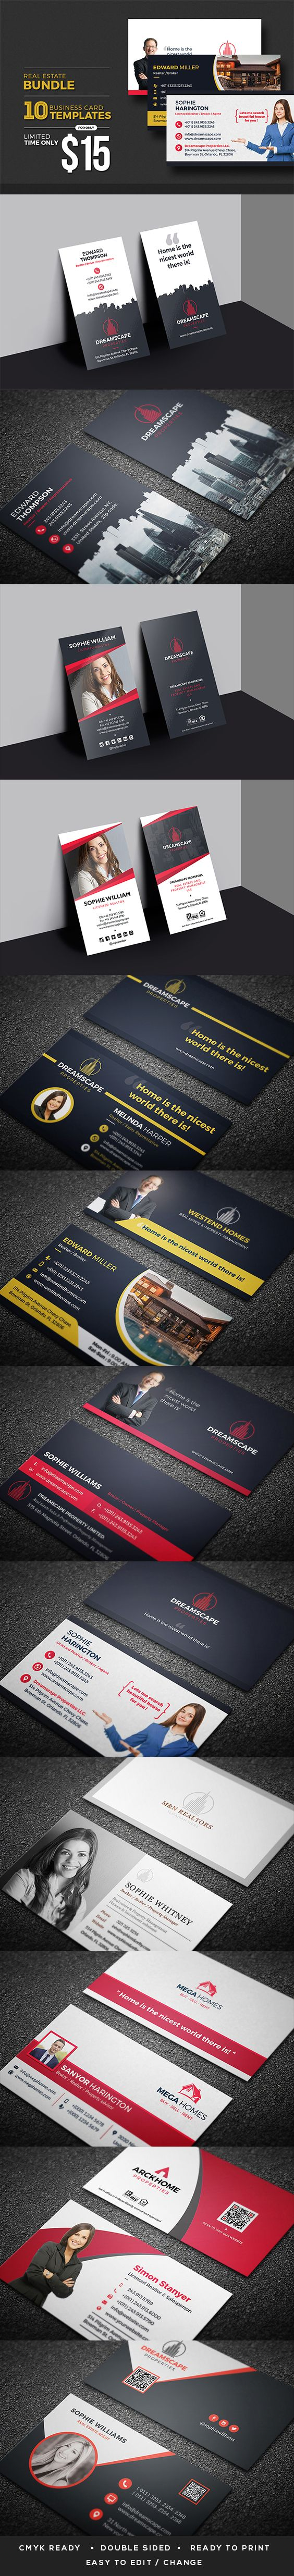 78 best creative business cards images on pinterest